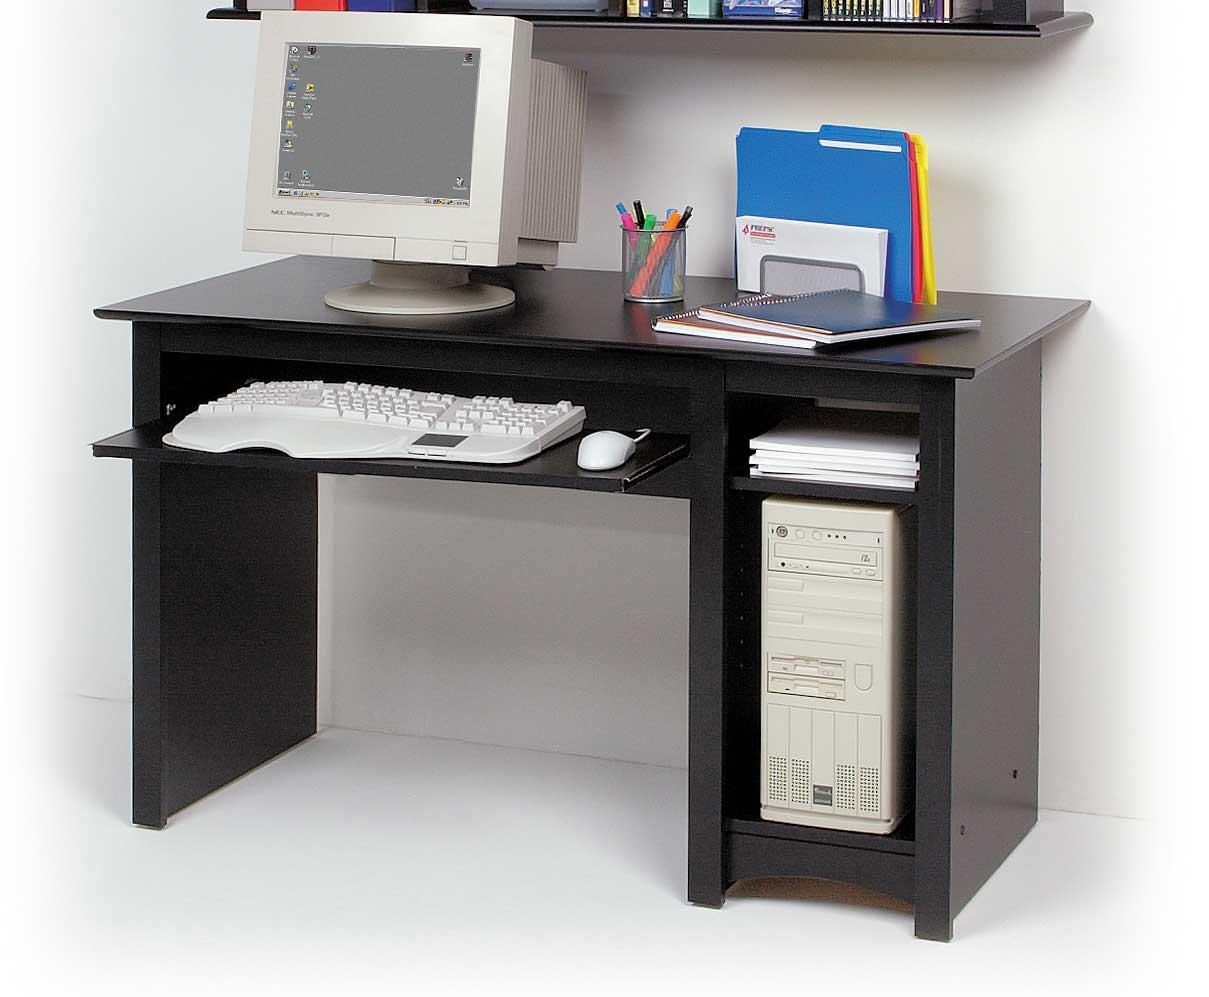 Space saving home office ideas with ikea desks for small - Desks for small spaces ...